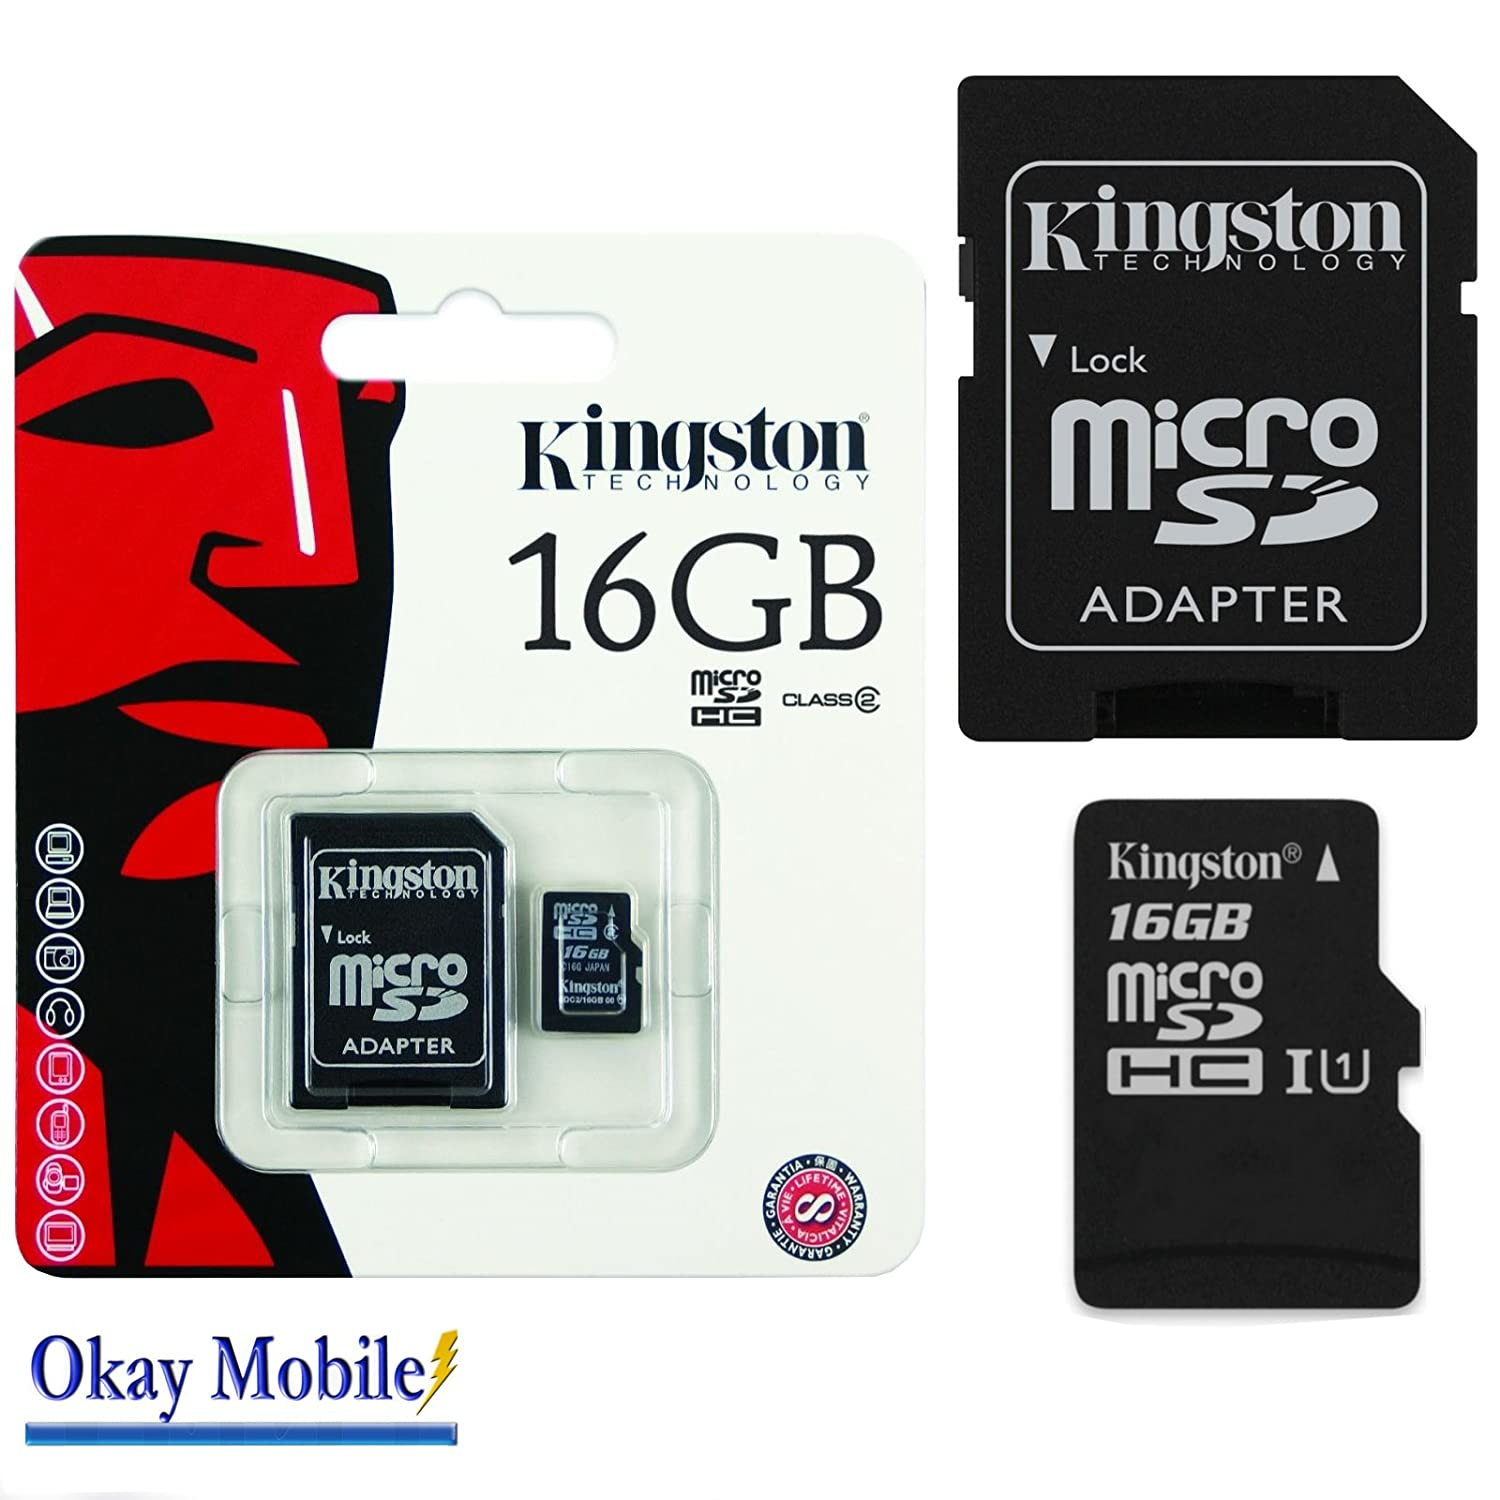 Original Kingston carte mé moire microSD 16  Go For Samsung Galaxy S7  Edge (sm-g386  g935  F) 7426770828973